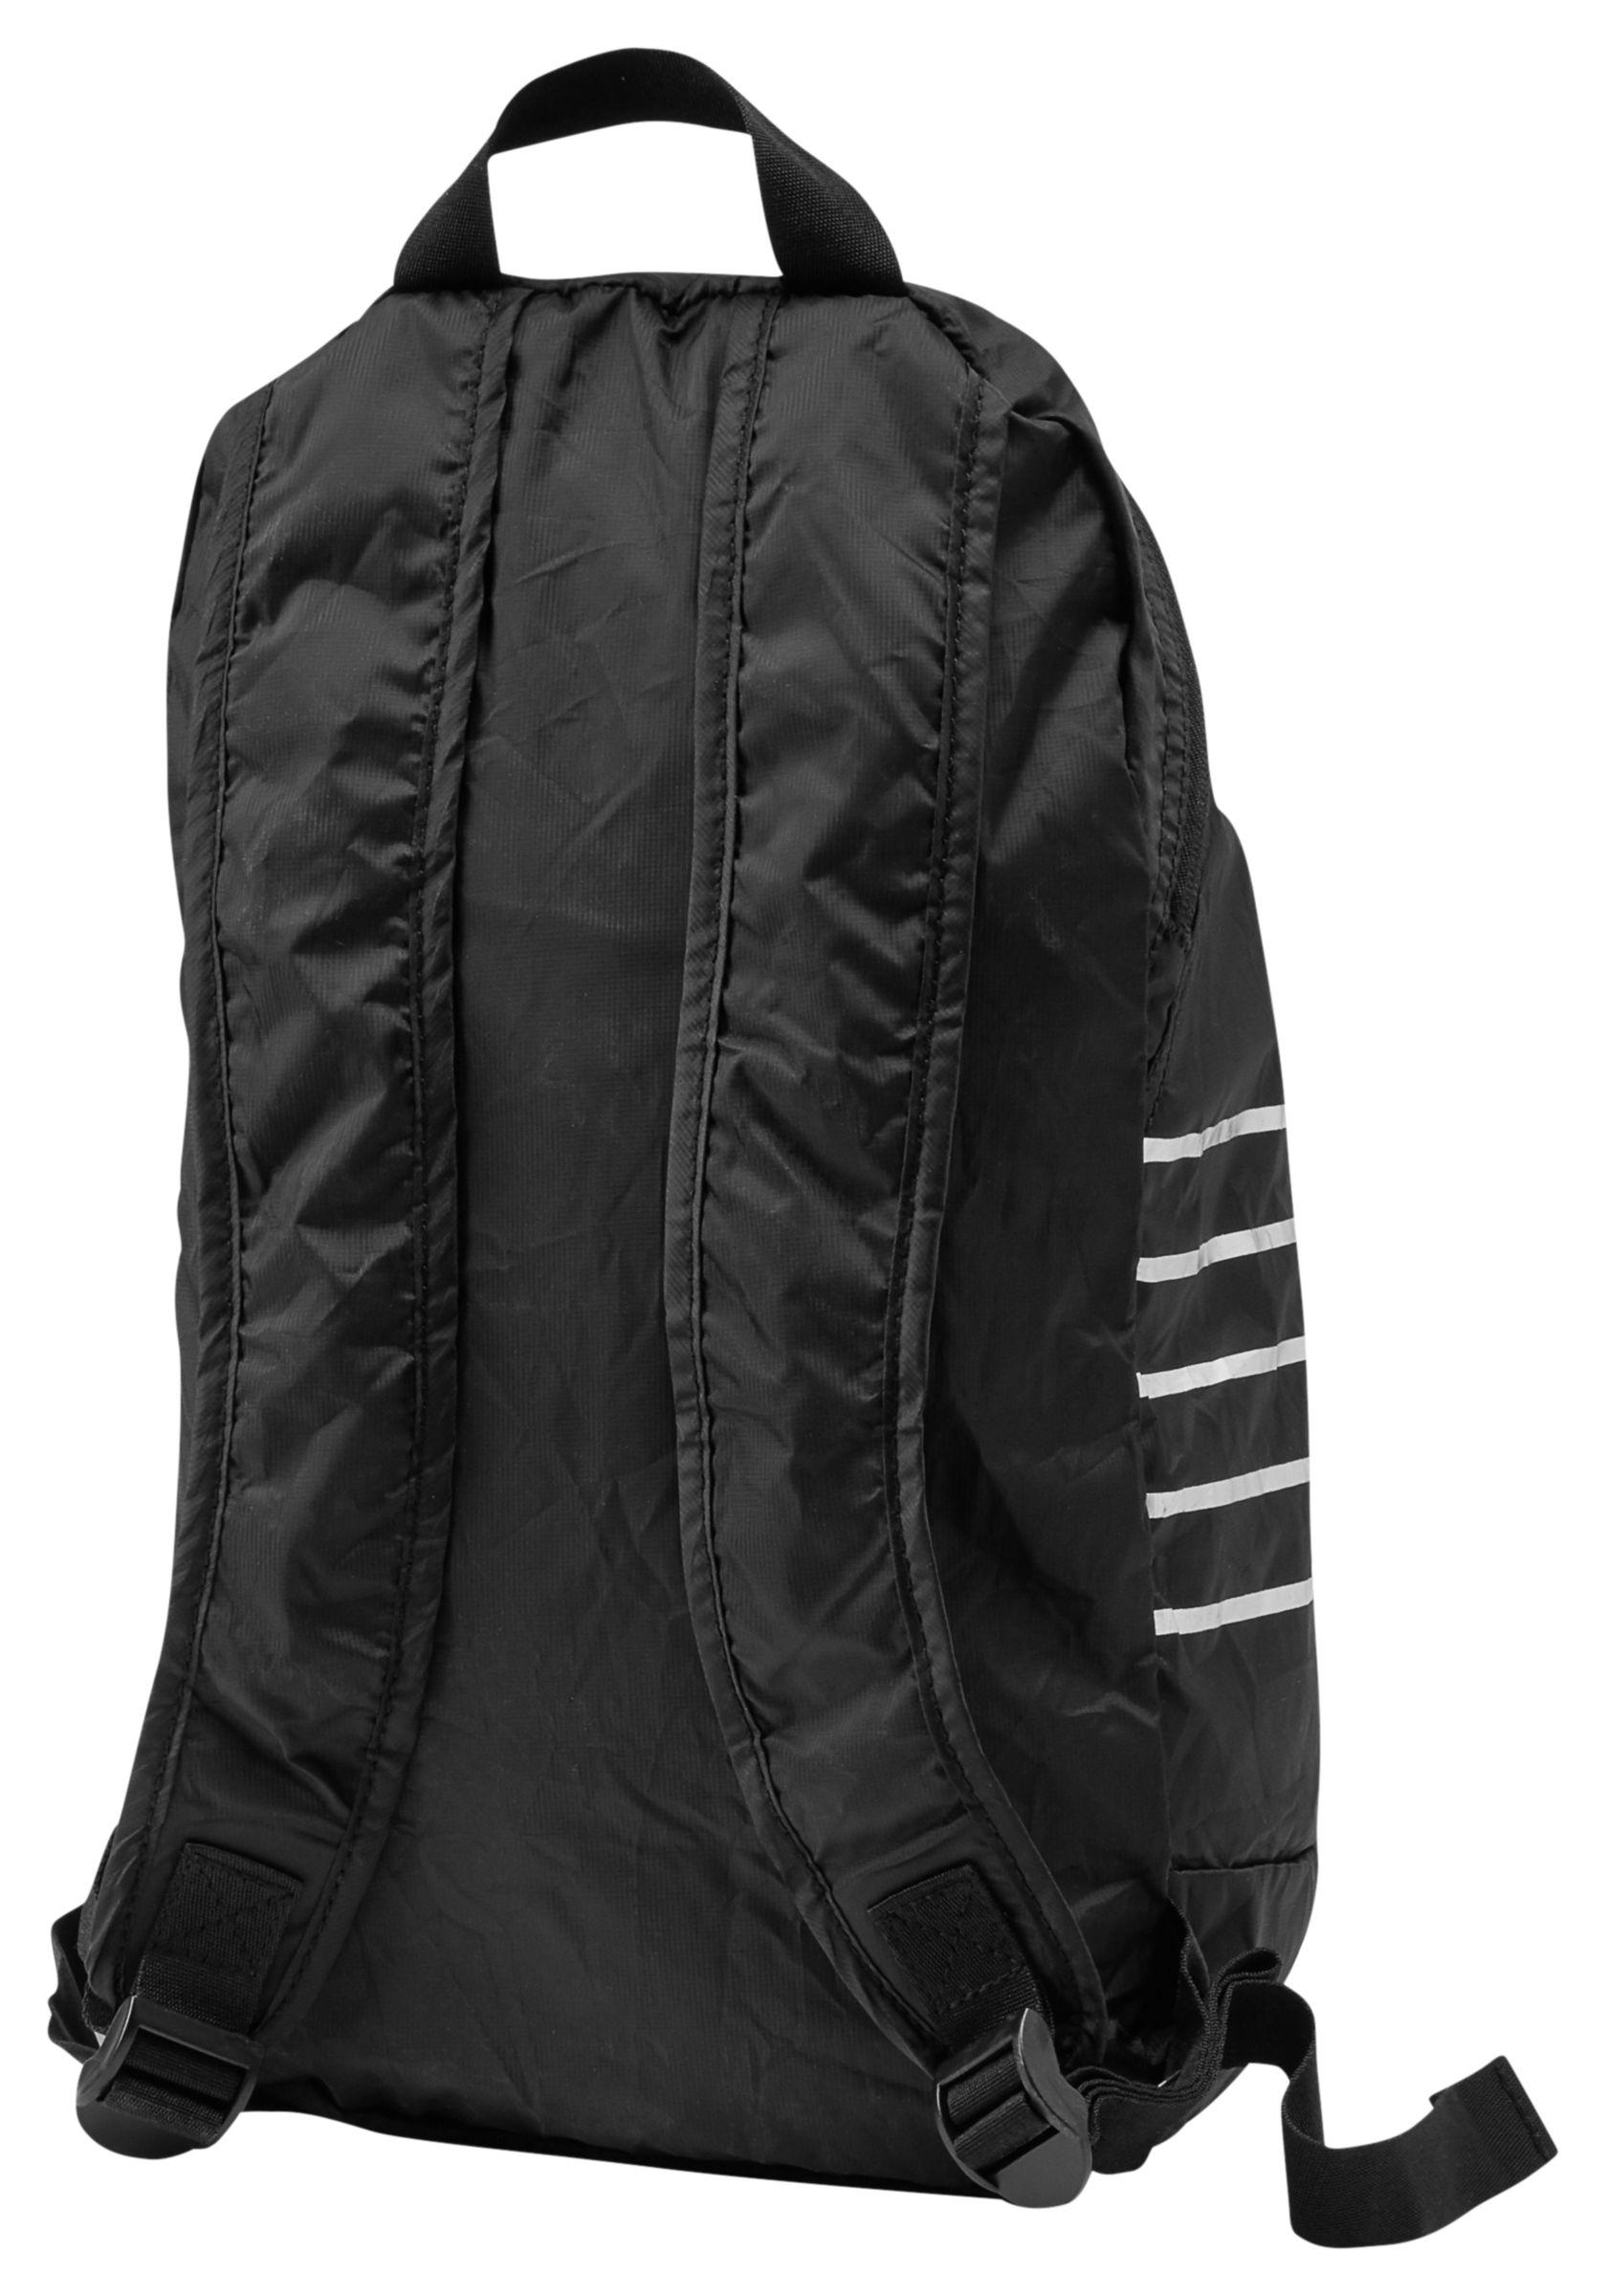 782e20a60ff9 Lyst - New Balance Nyc Marathon Packable Backpack in Black for Men